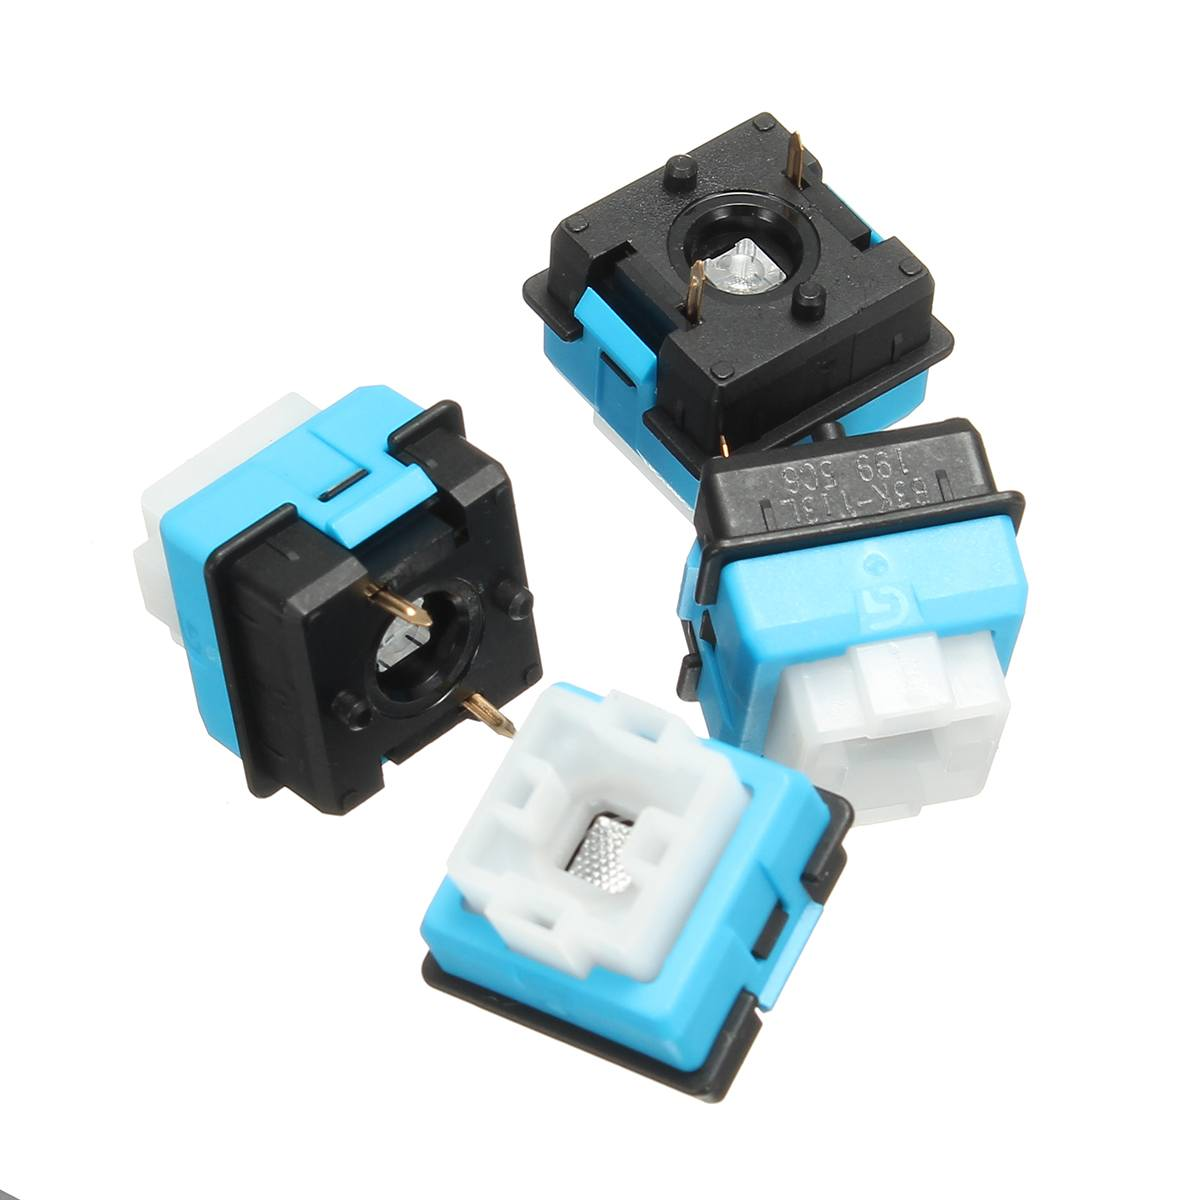 4pcs Original For OMRON Romer-g Switch For Ormon Axis For Logitech G910 G810 G310 Pro Mechanical Keyboard Switch RGB